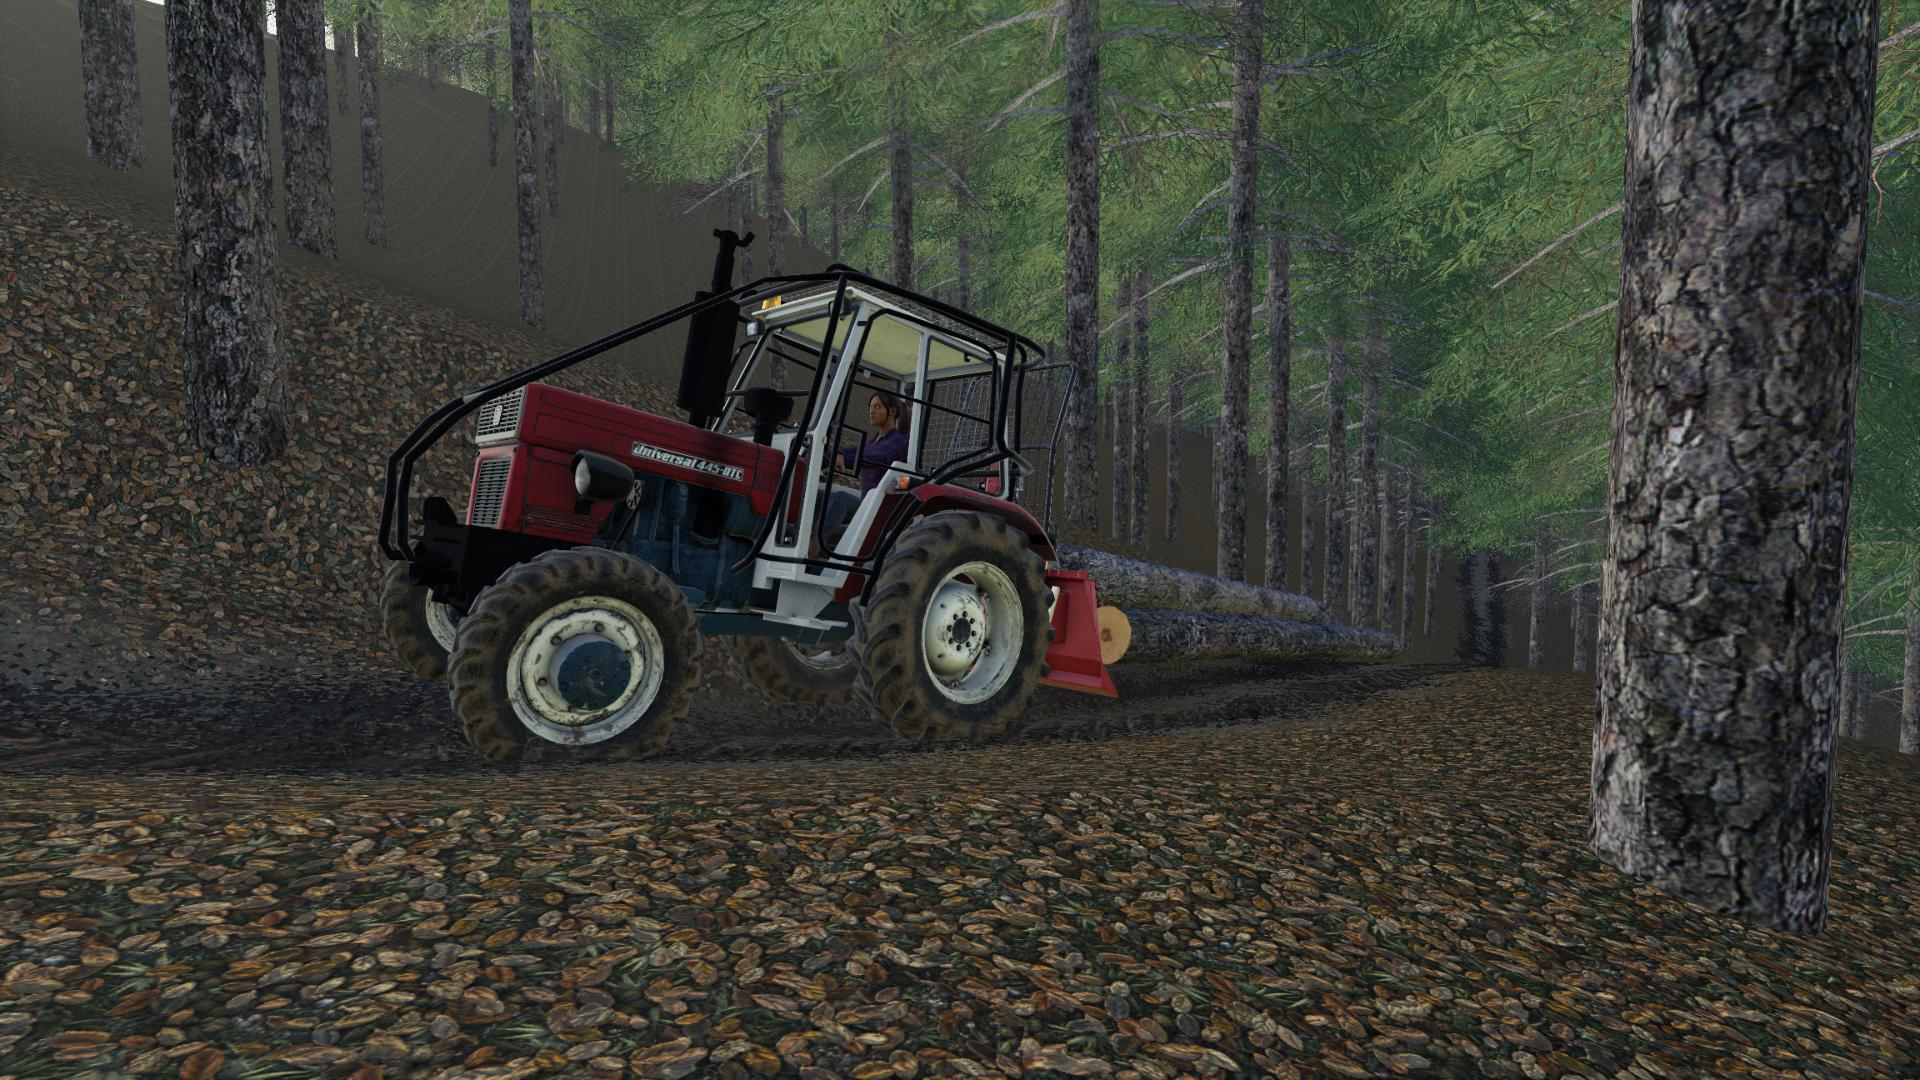 FS19 - Universal 445 Turbo Forest Tractor V1.0